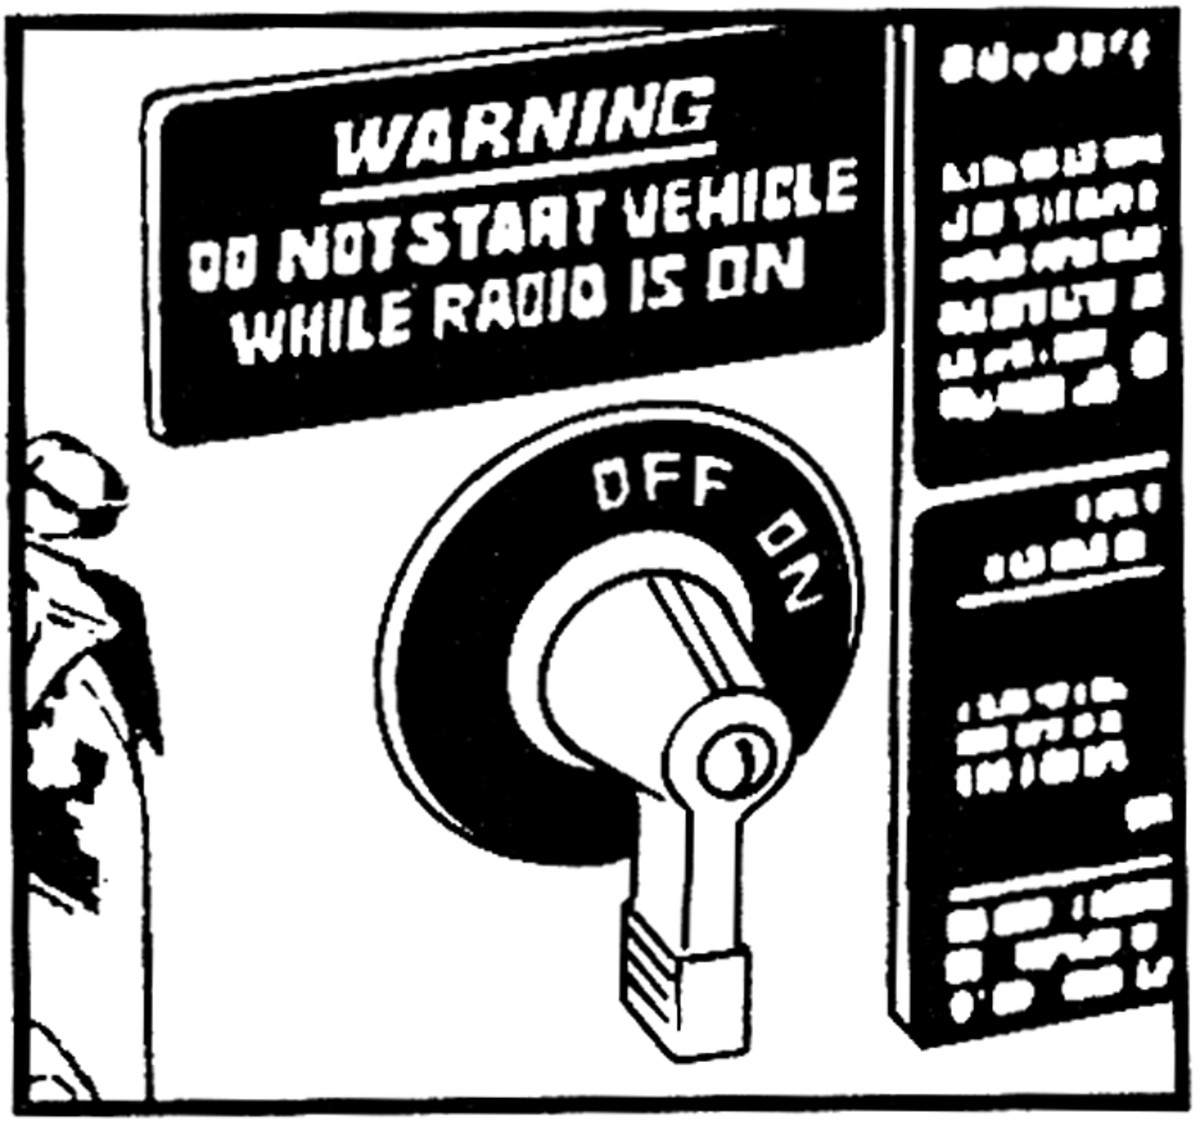 These warning labels may not be readily available, but the starting system can produce voltage spikes that can destroy radios, intercoms and other electronic devices. A poor battery connection can generate short spikes well over a hundred volts in amplitude. Do not start vehicle while radio is on. It's also good procedure to turn them off before shutting down the engine.